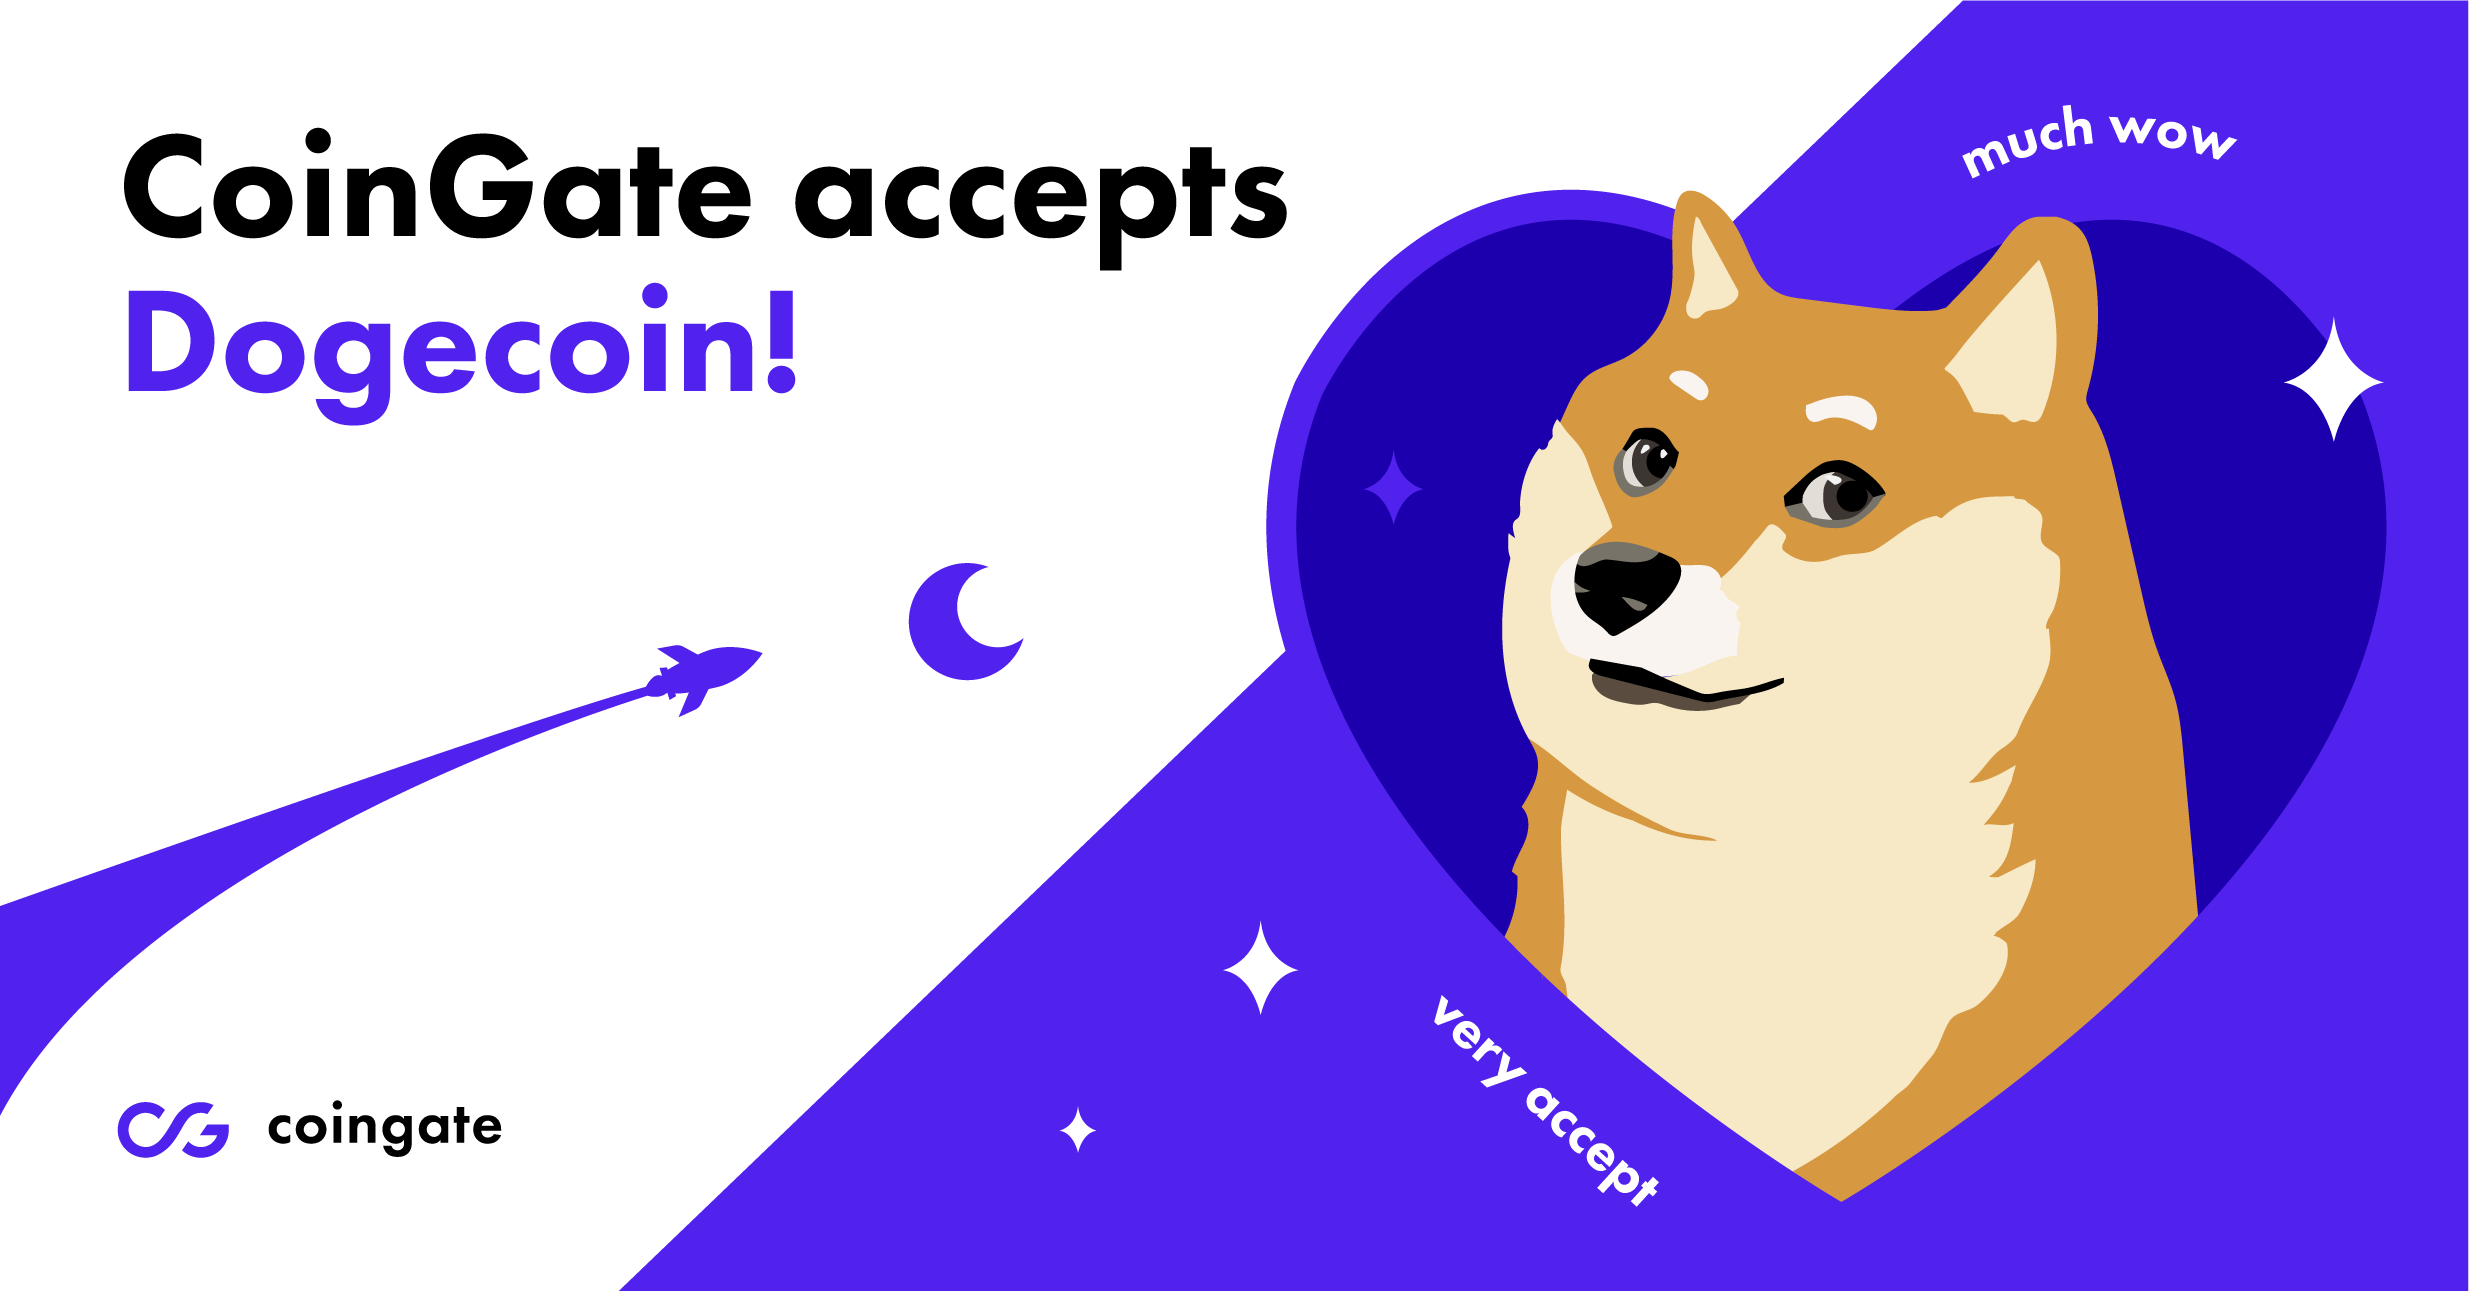 coingate accept doge very cool